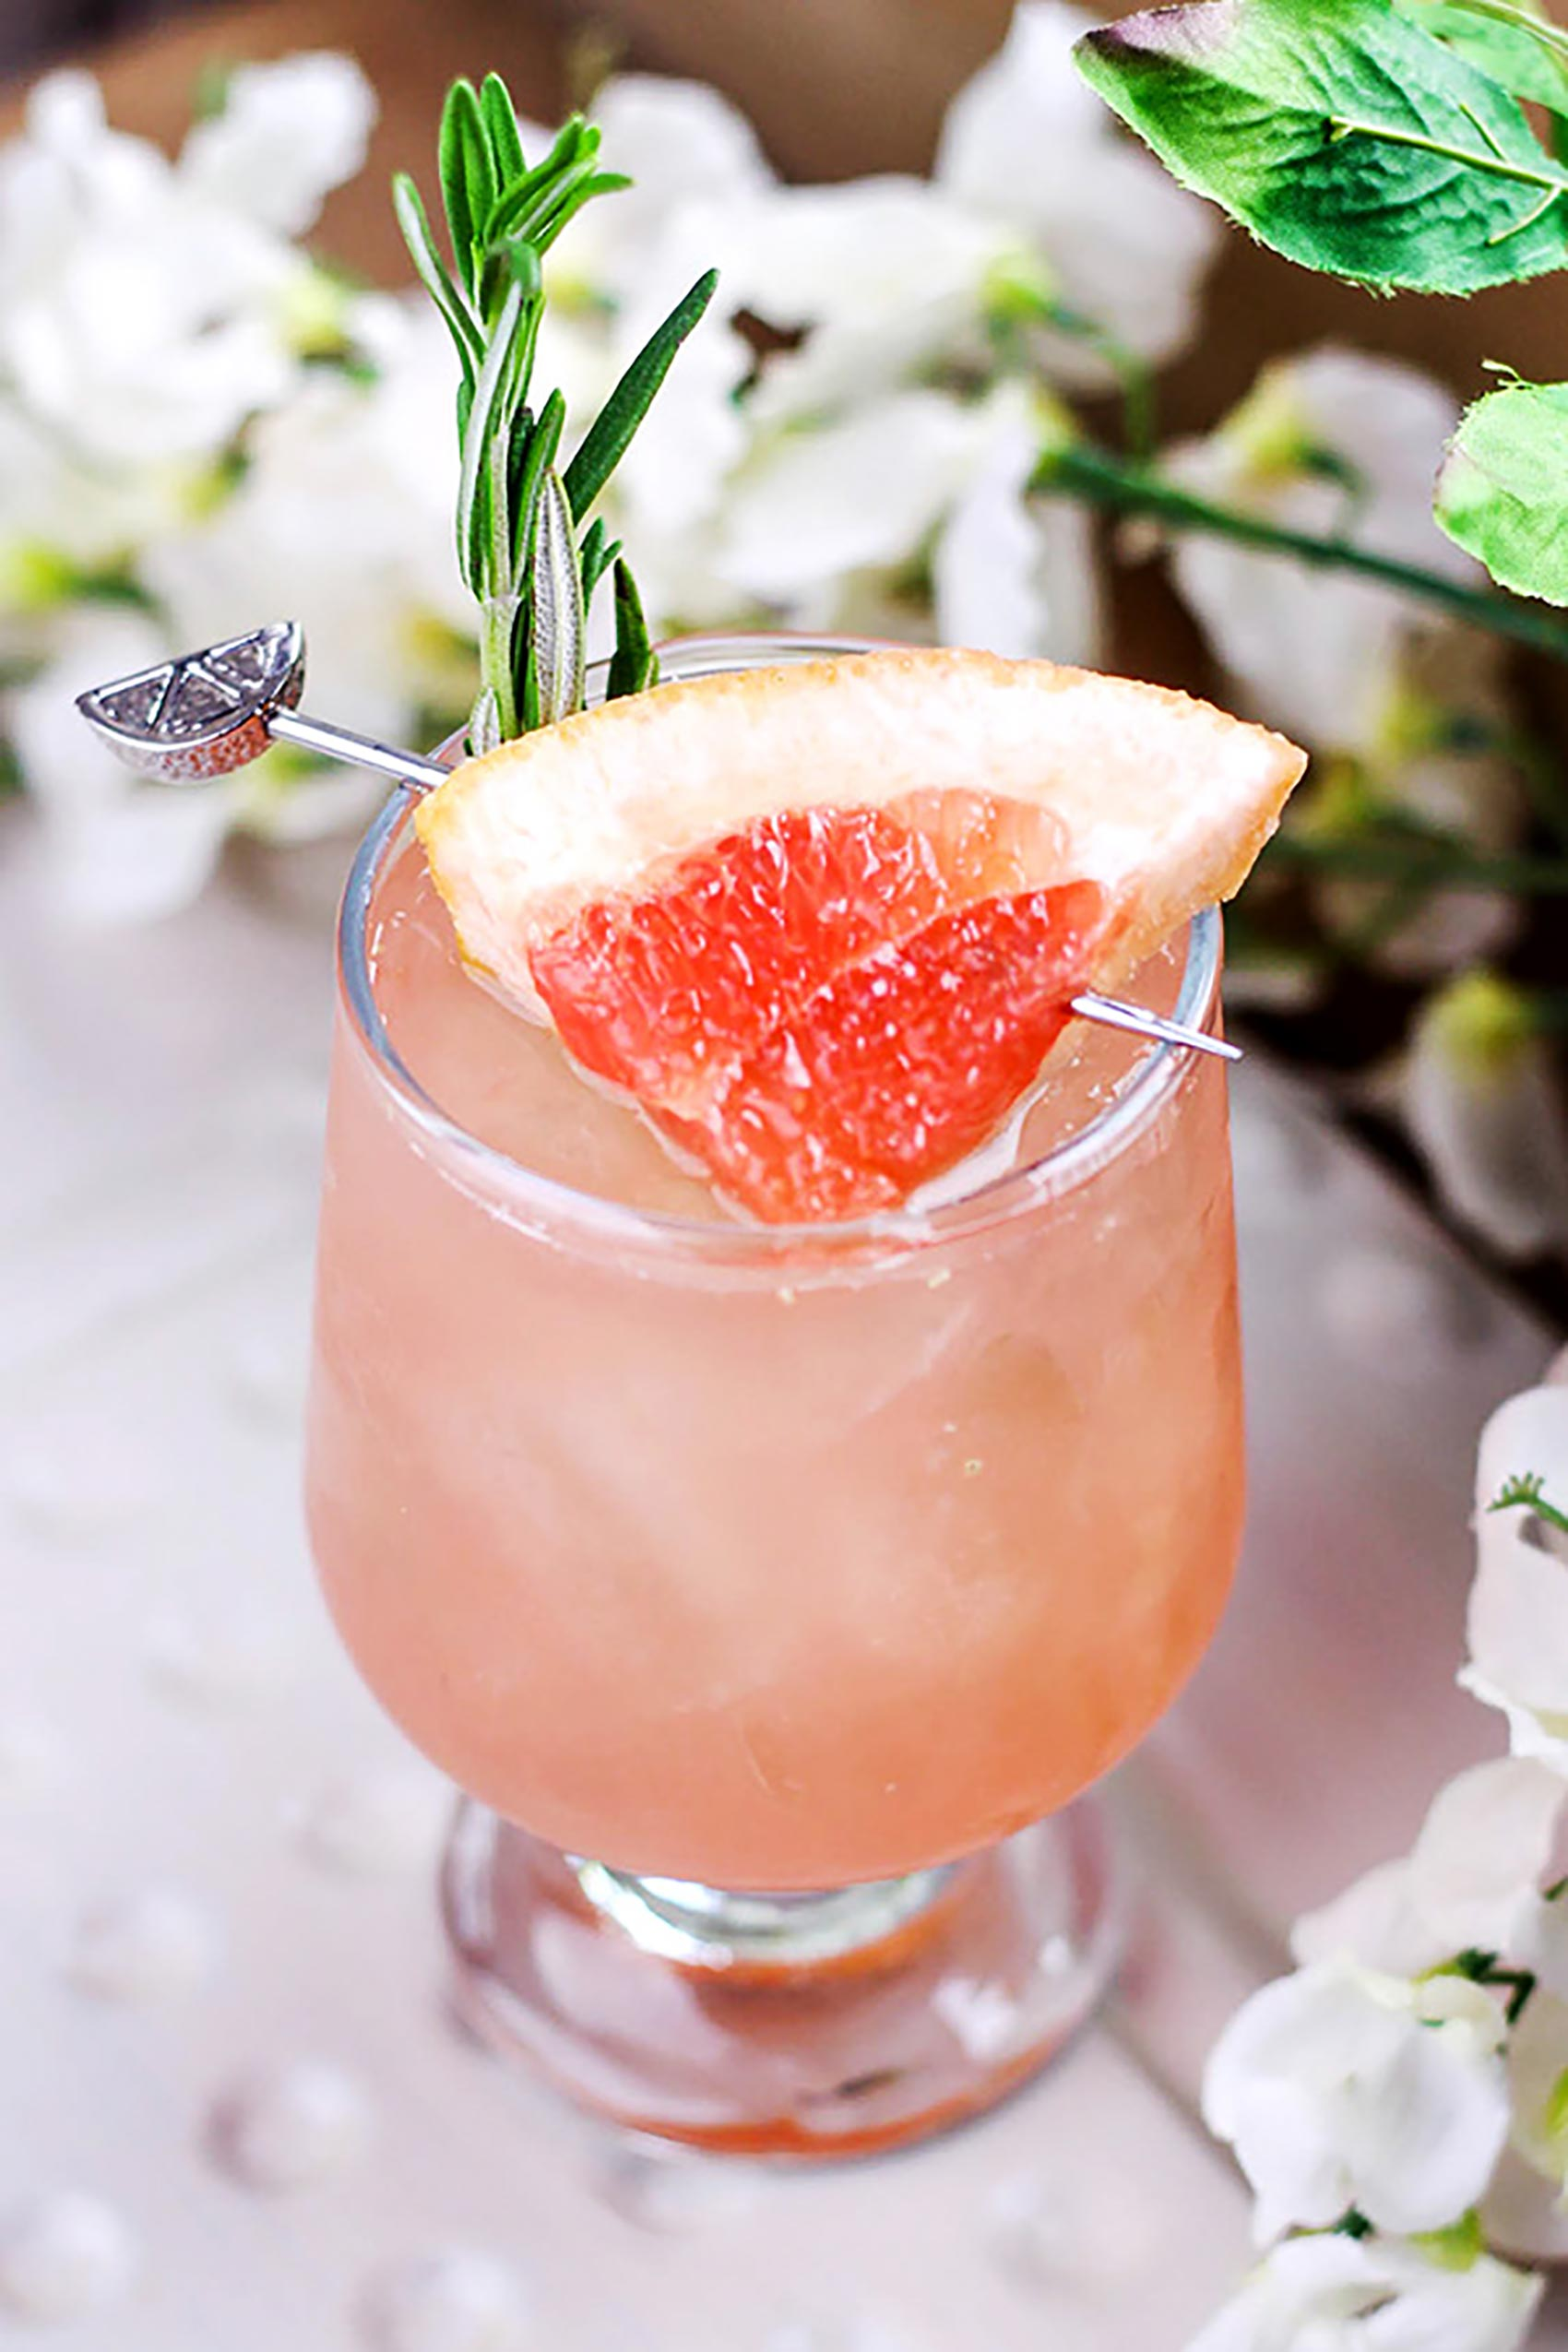 Ruby Red Grapefruit & Jalapeno Cocktail Recipe